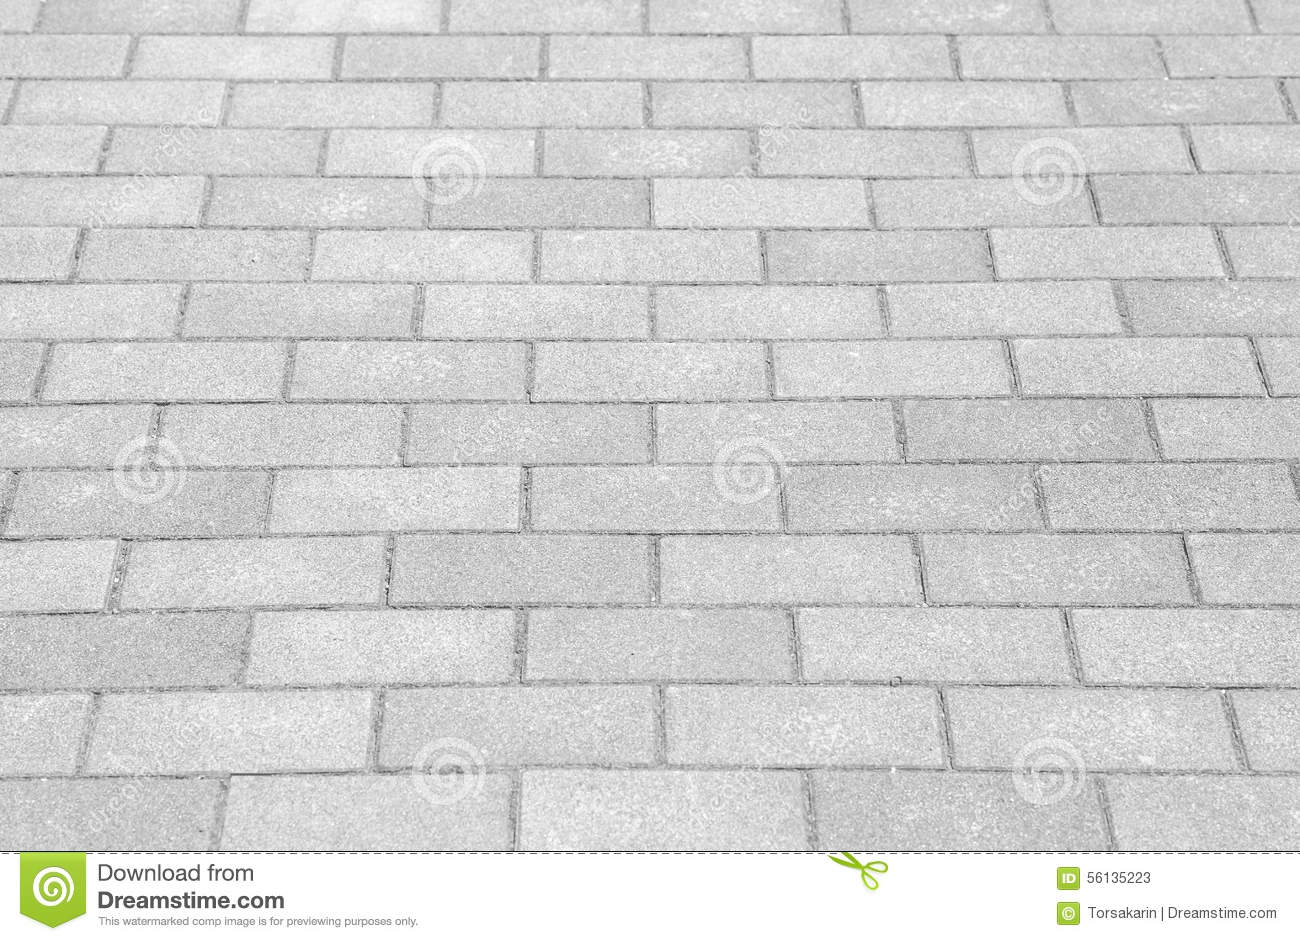 Free Images Structure Old Stone Wall Brick Material